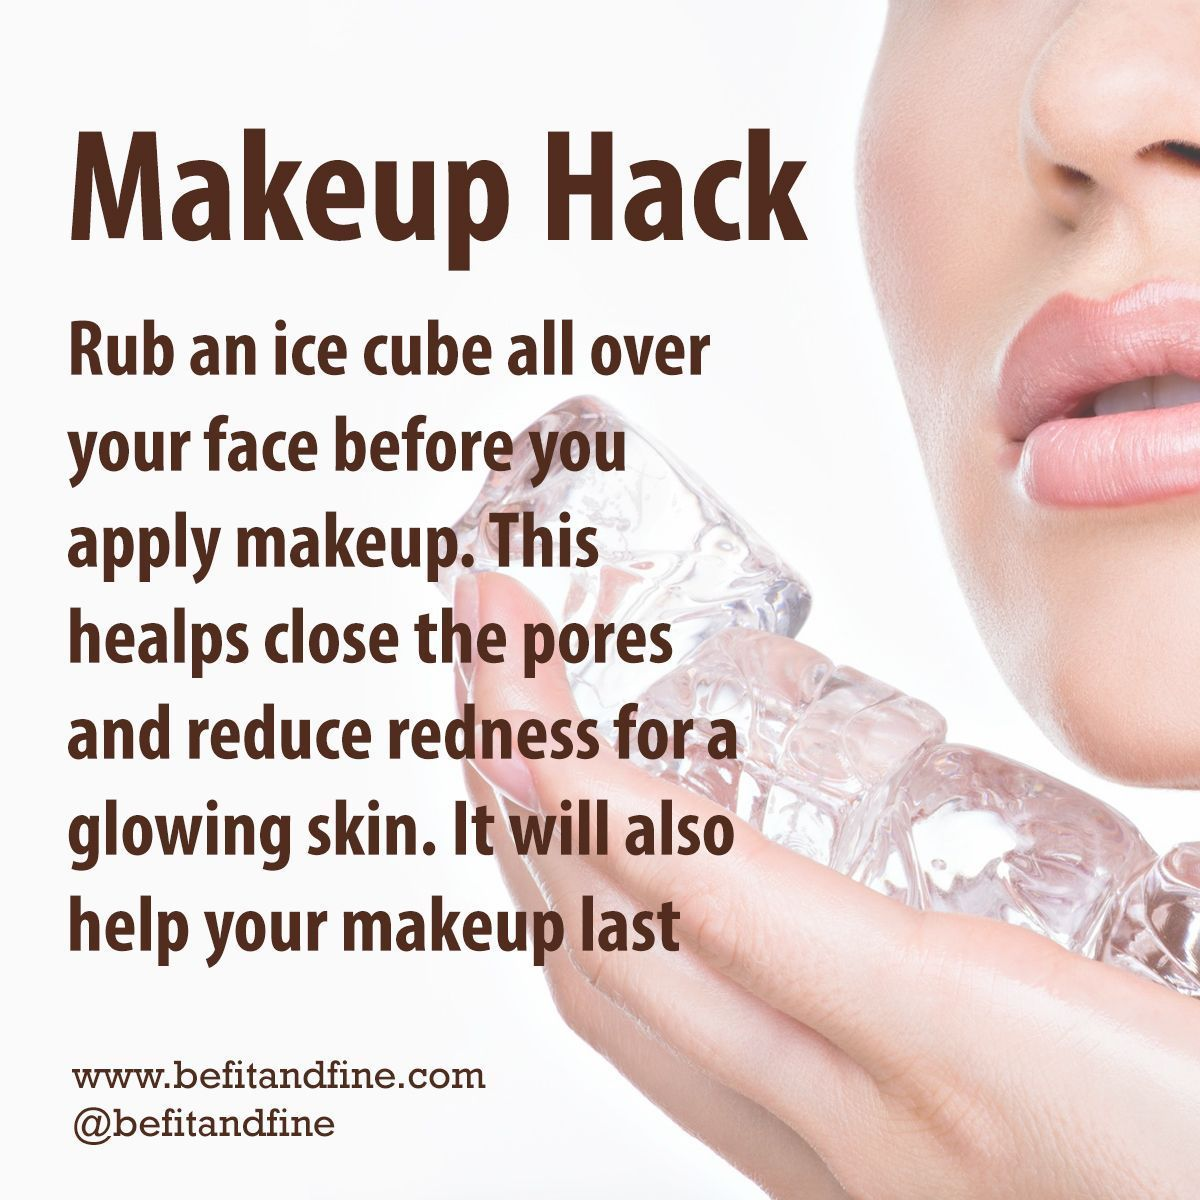 Rub an ice cube all over your face before you apply makeup